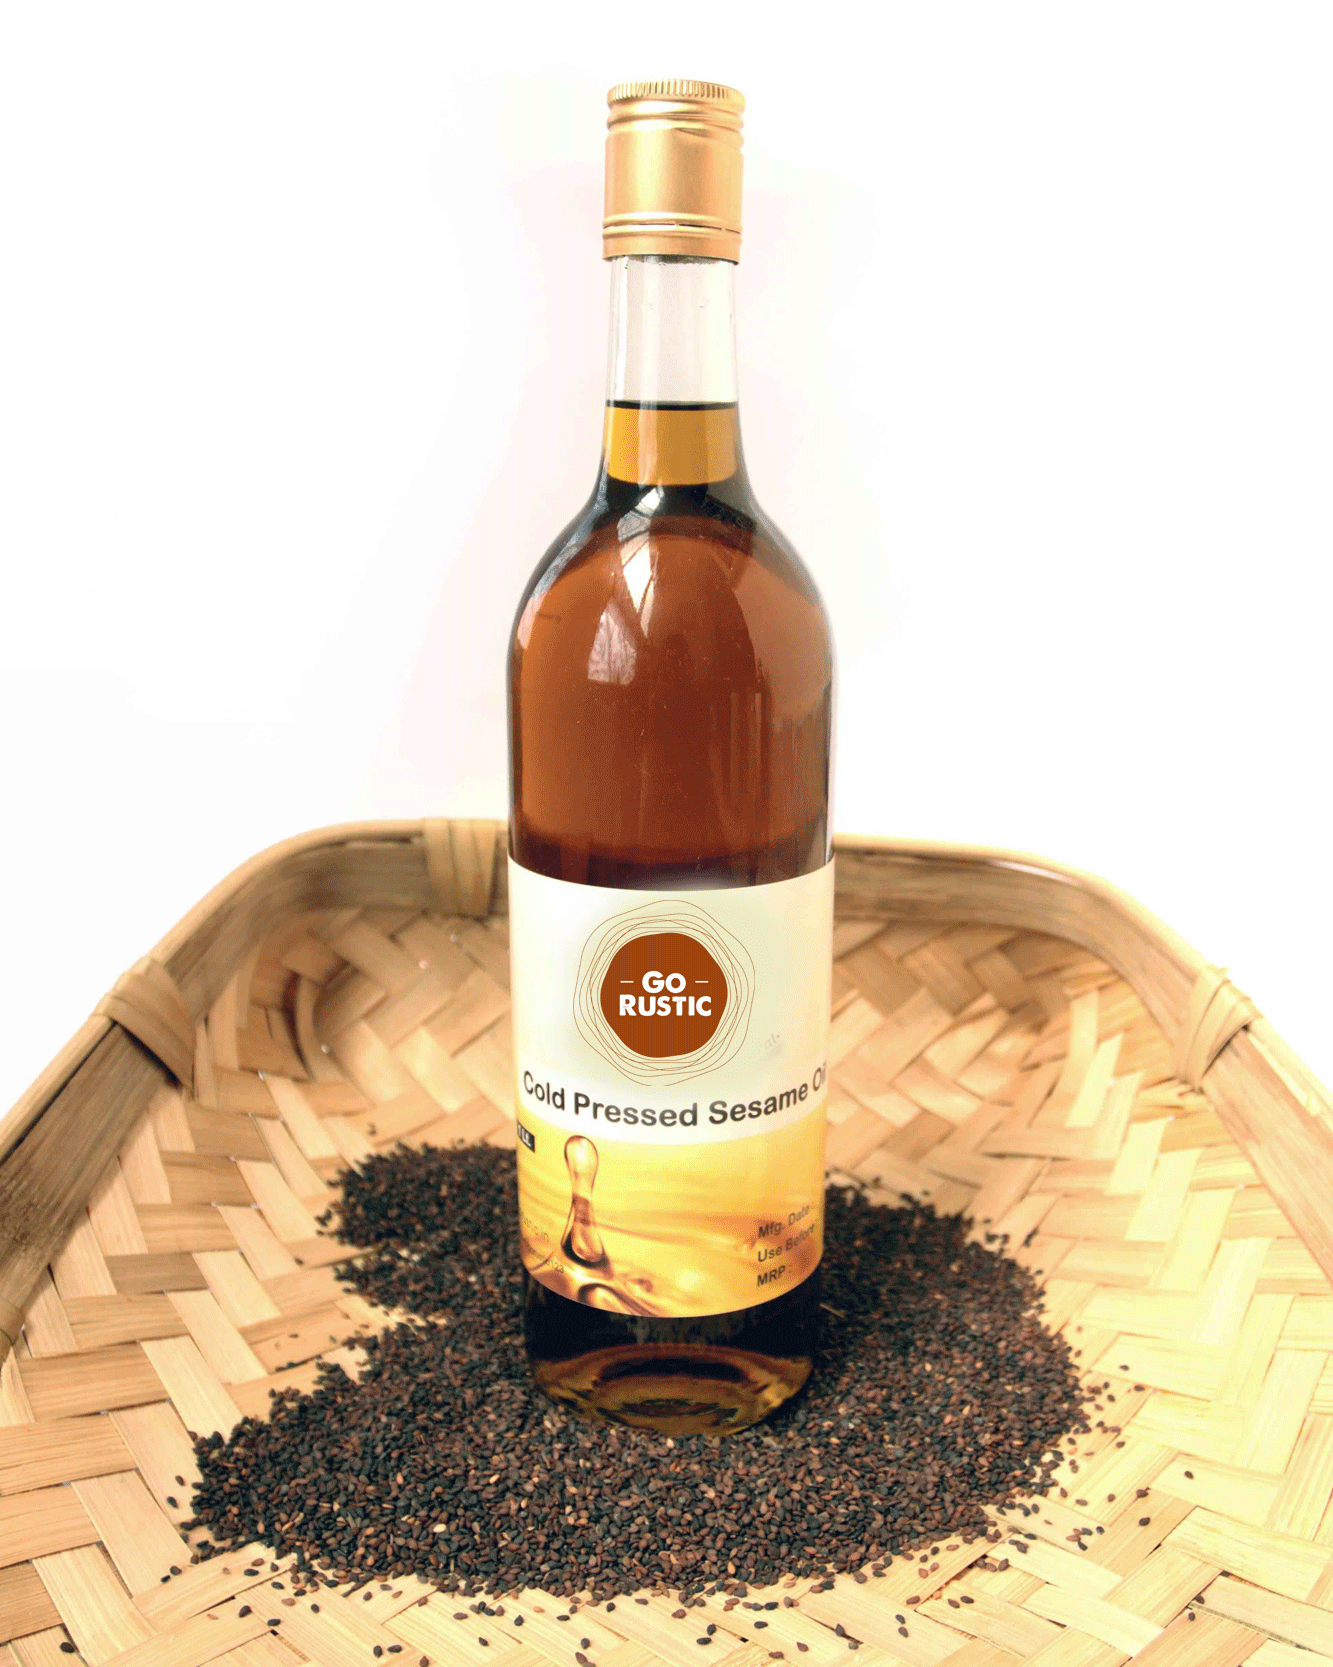 Cold Pressed Sesame Oil / Gingelly Oil  (From Black Sesame Seeds)